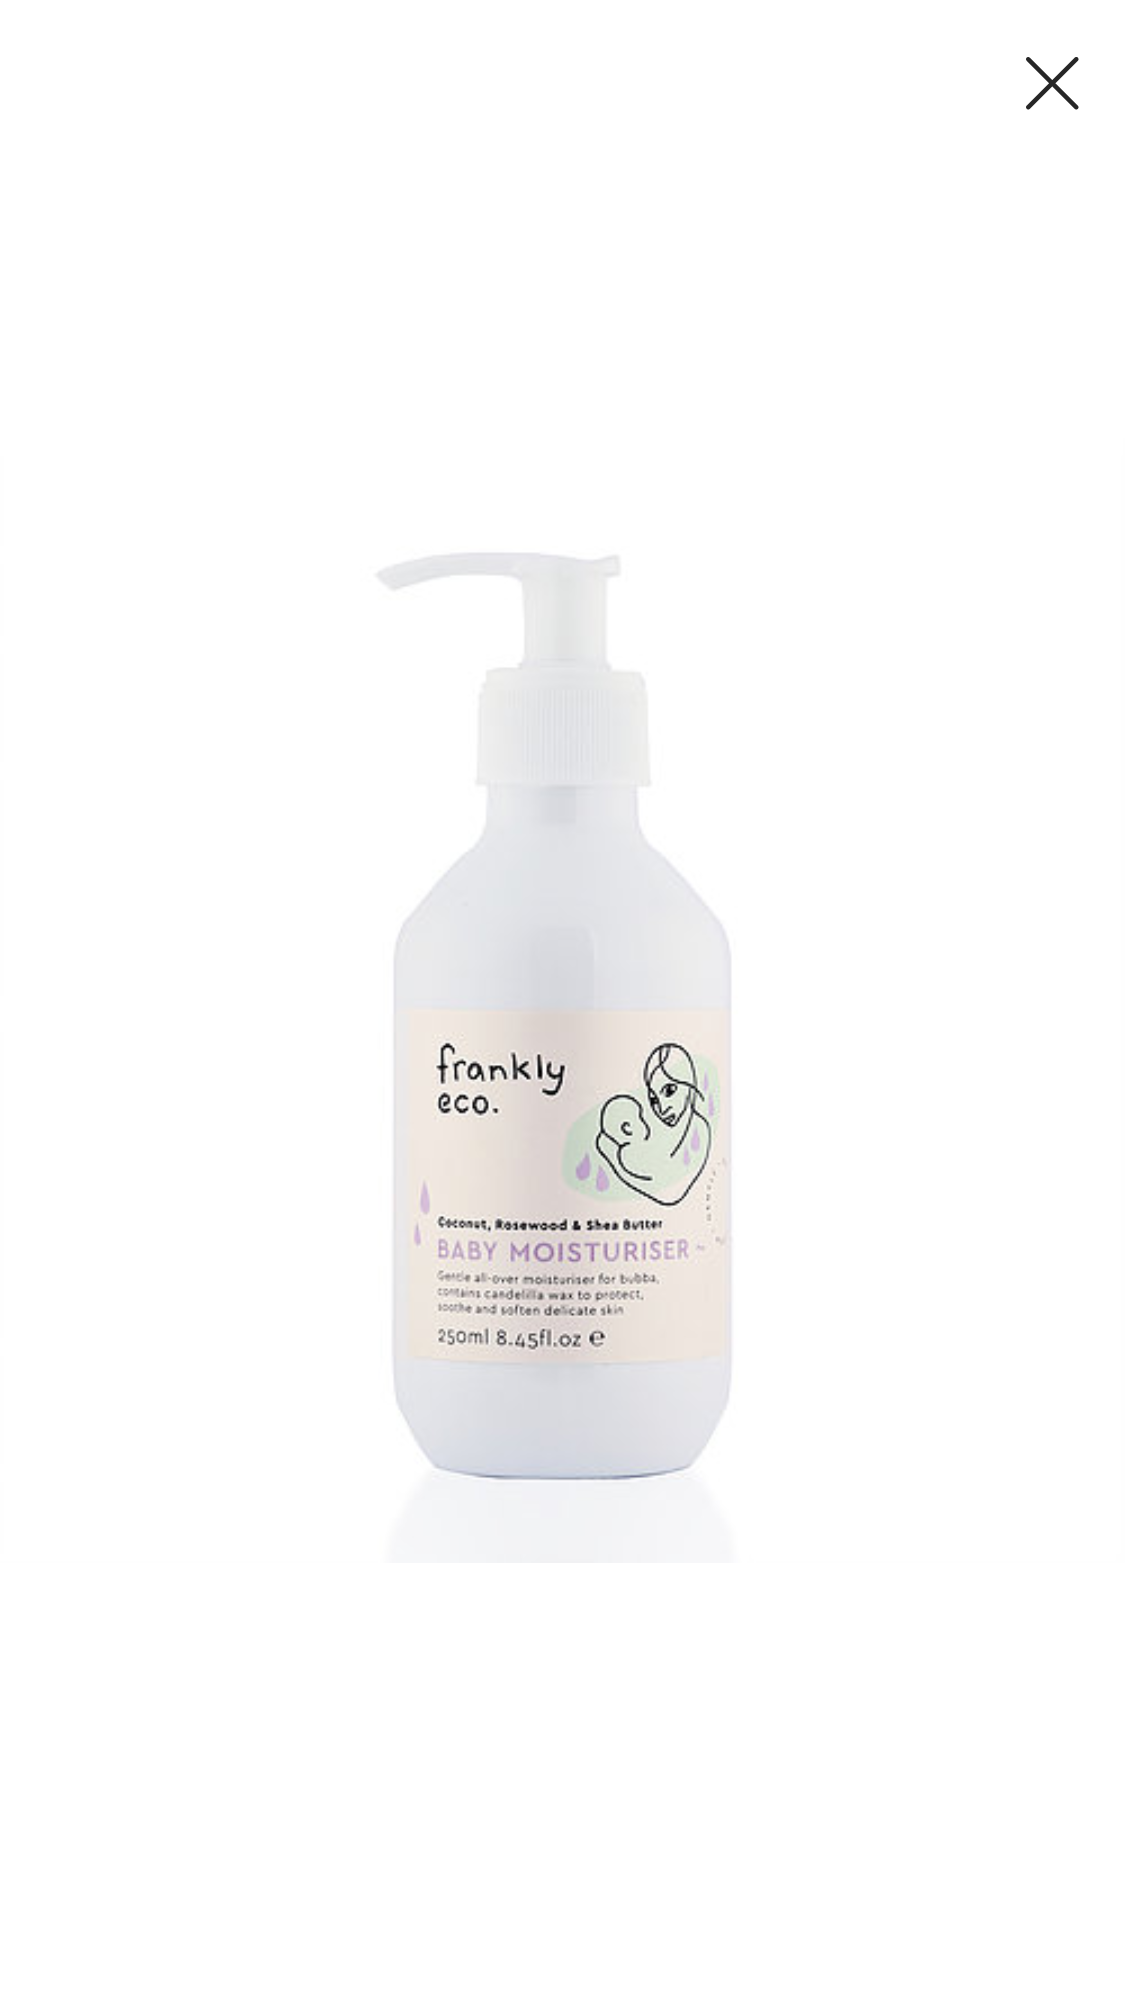 Frankly Eco Baby Moisturiser 250mL $27 each